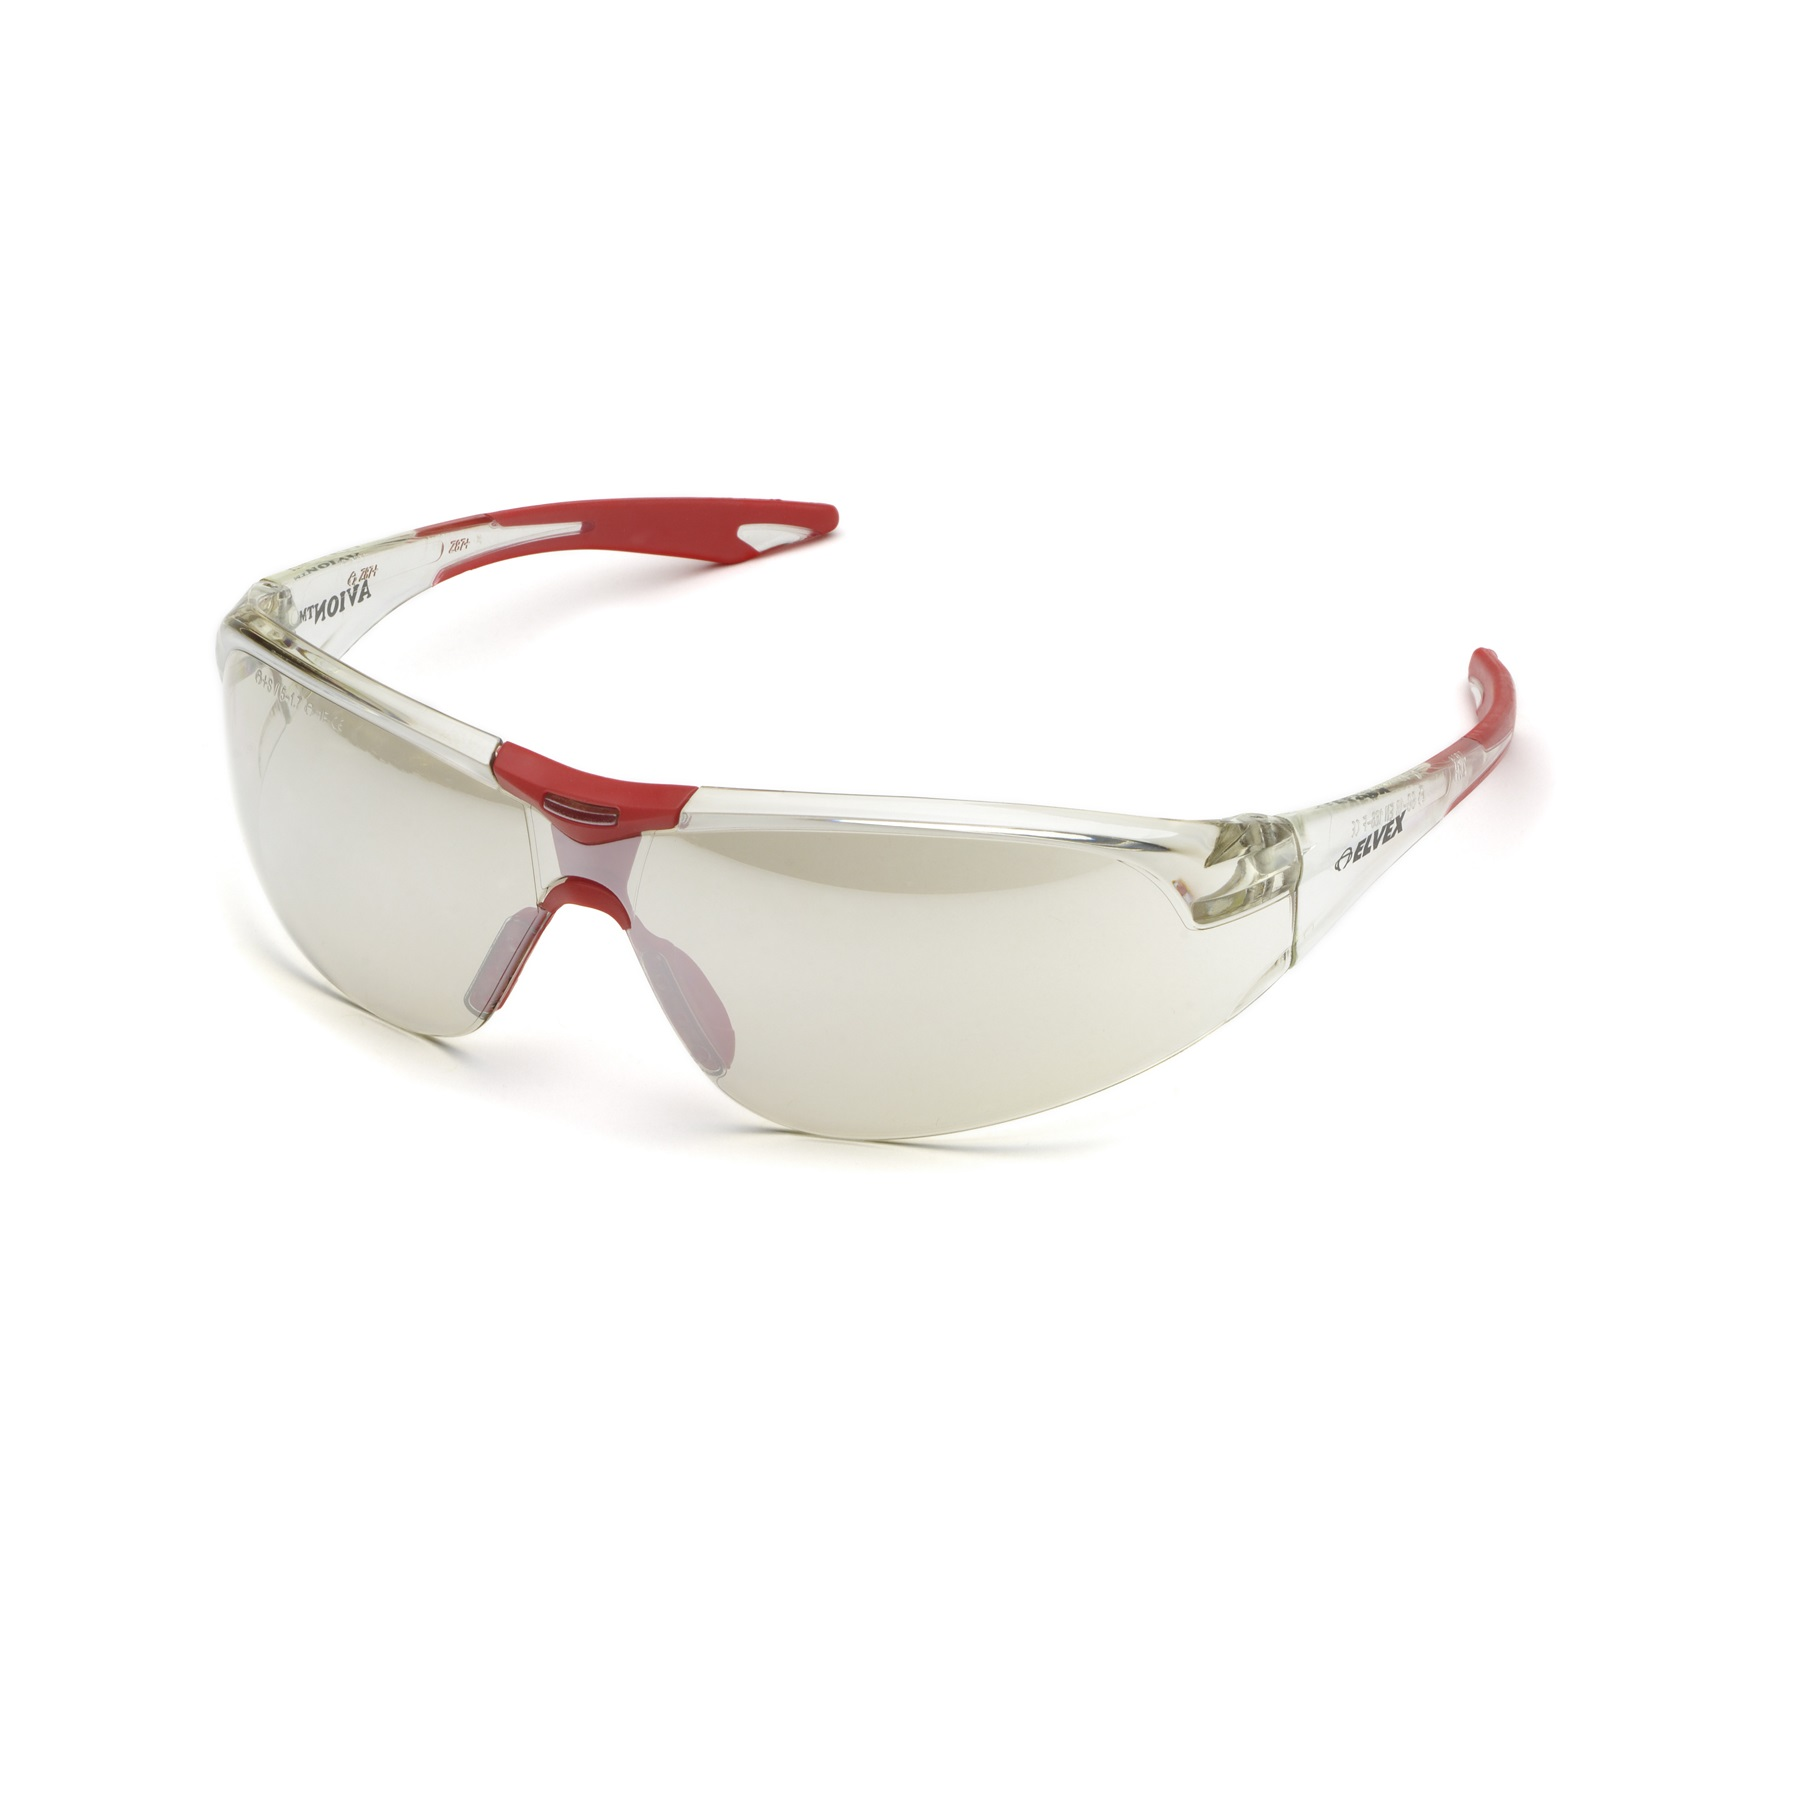 Elvex Avion Safety Glasses SG-18